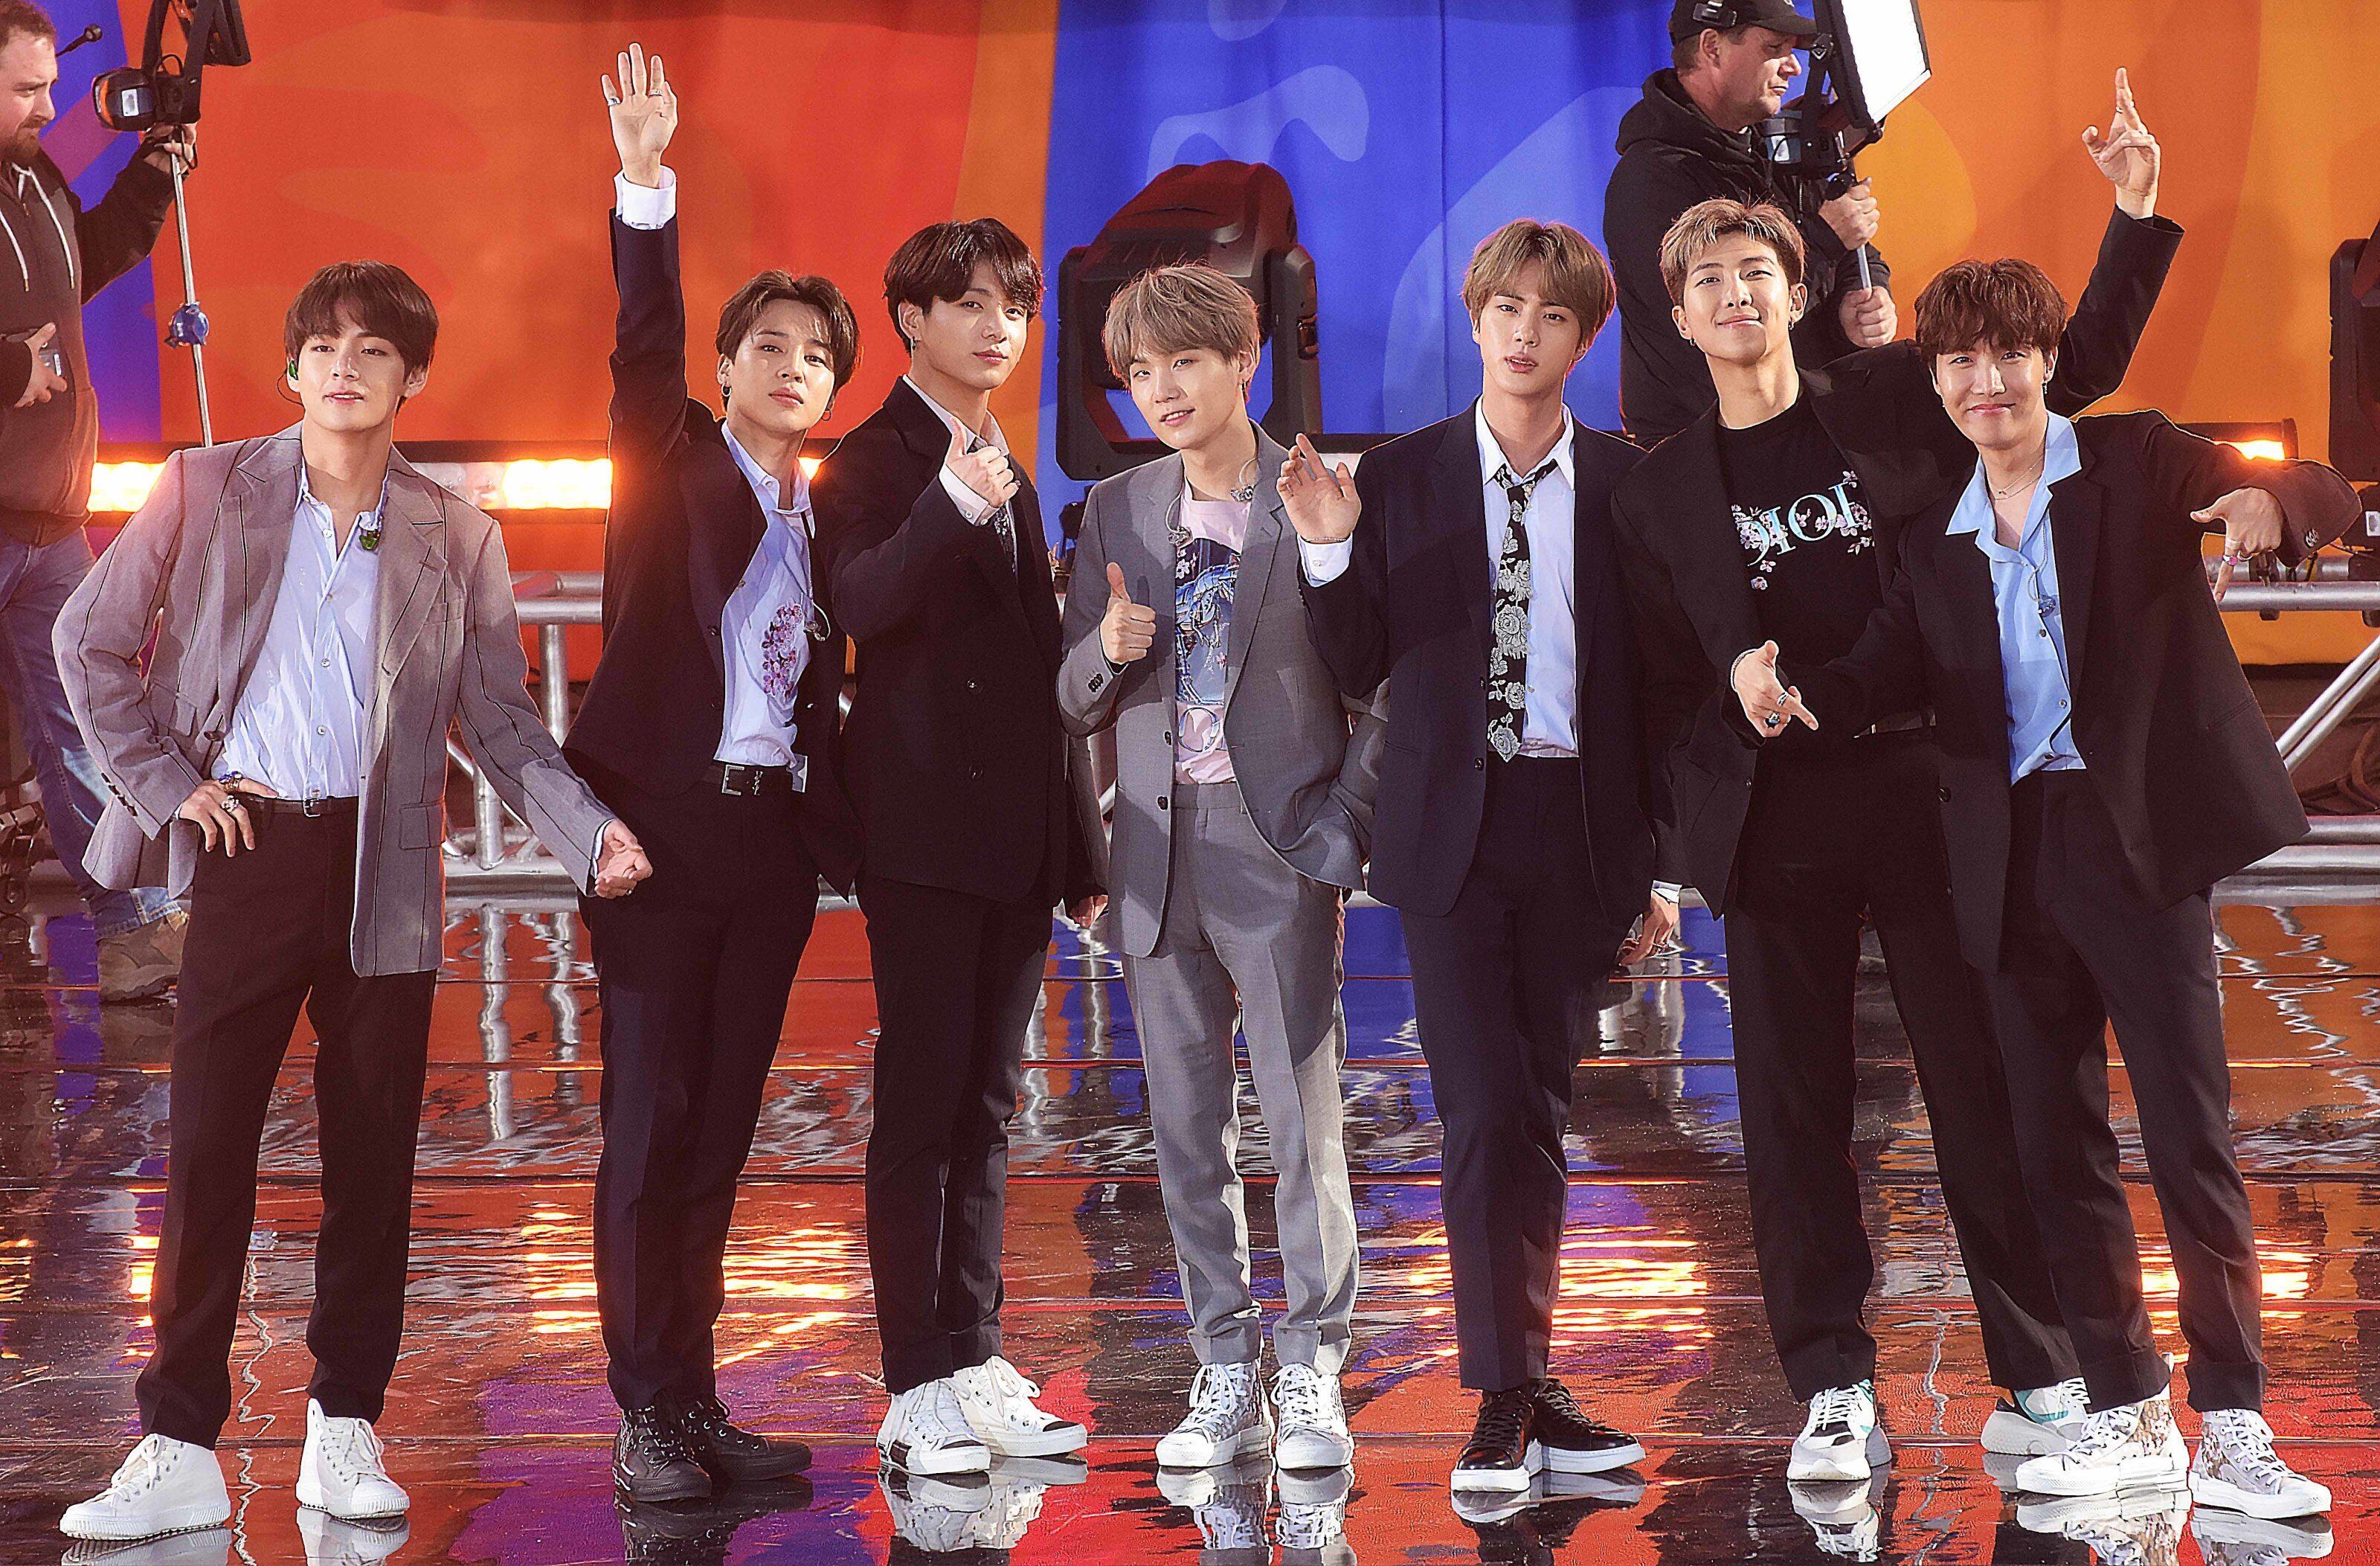 FanSided 250: BTS was the hottest music fandom of 2019